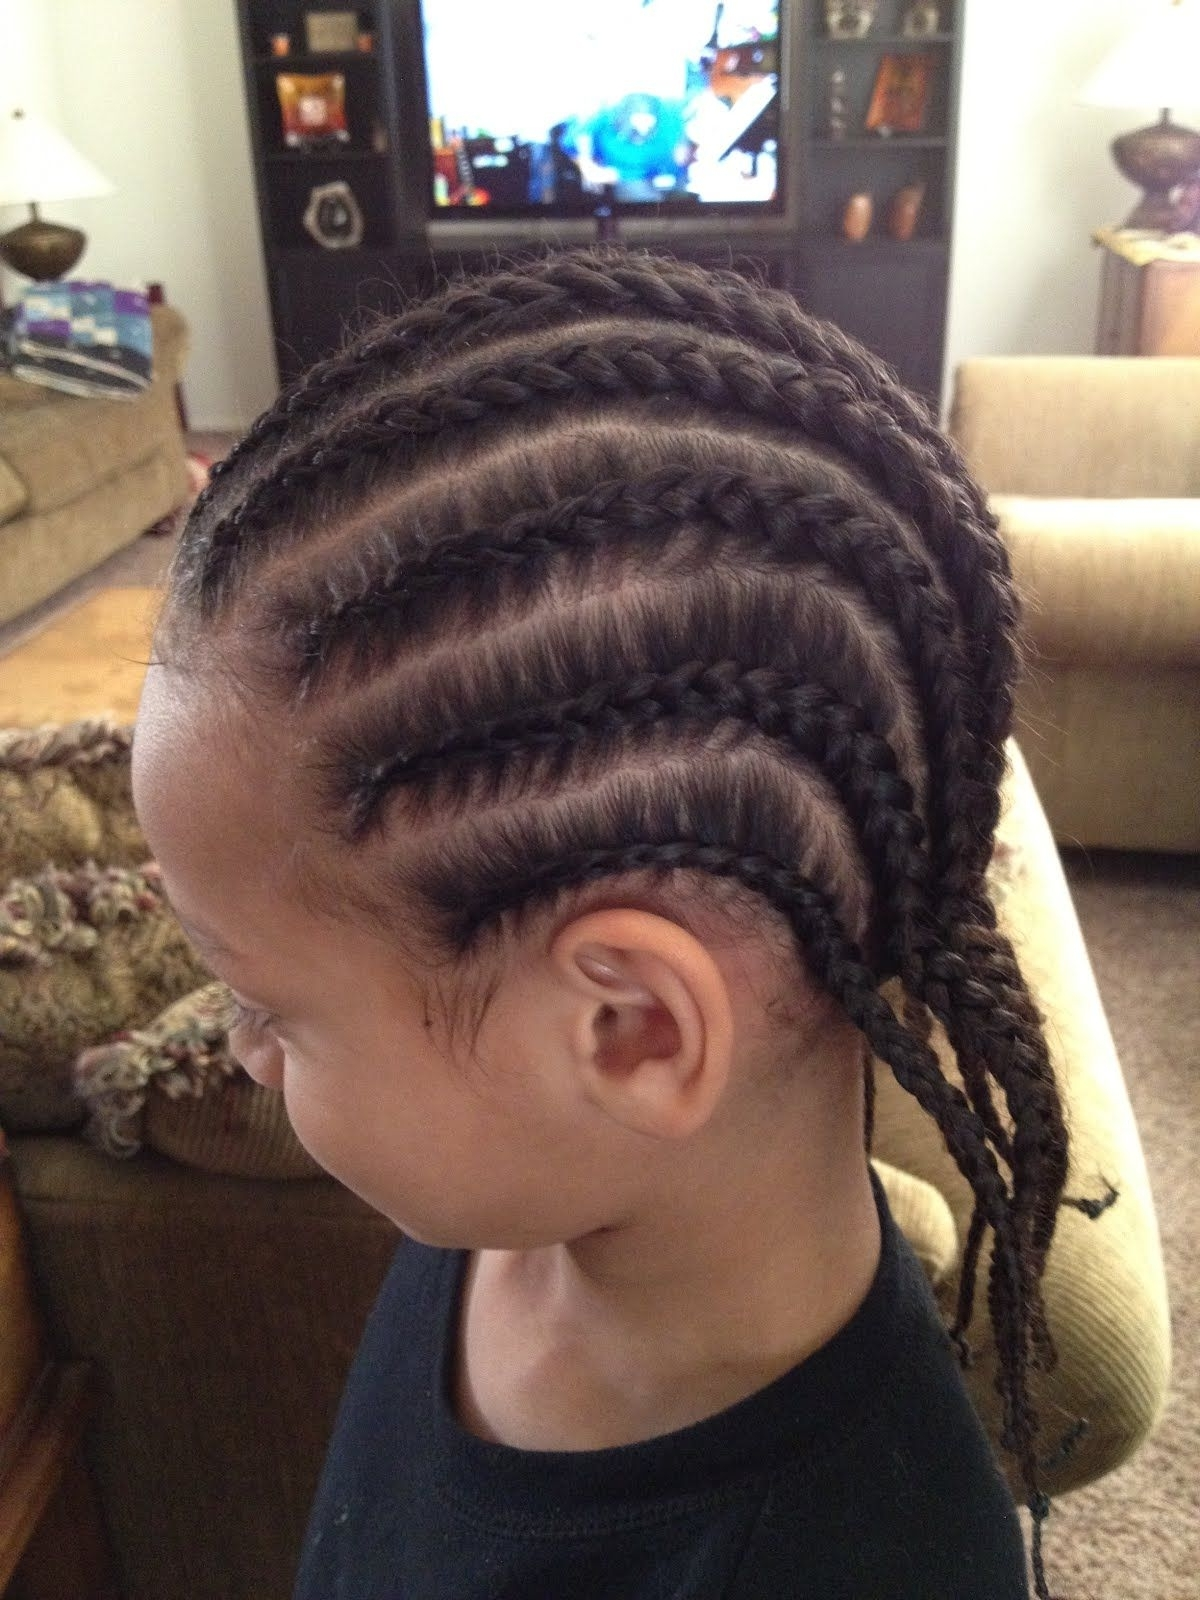 Fashionable Cornrows Hairstyles For Guys Regarding Boys Haircuts: 14 Cool Hairstyles For Boys With Short Or Long Hair (View 4 of 15)